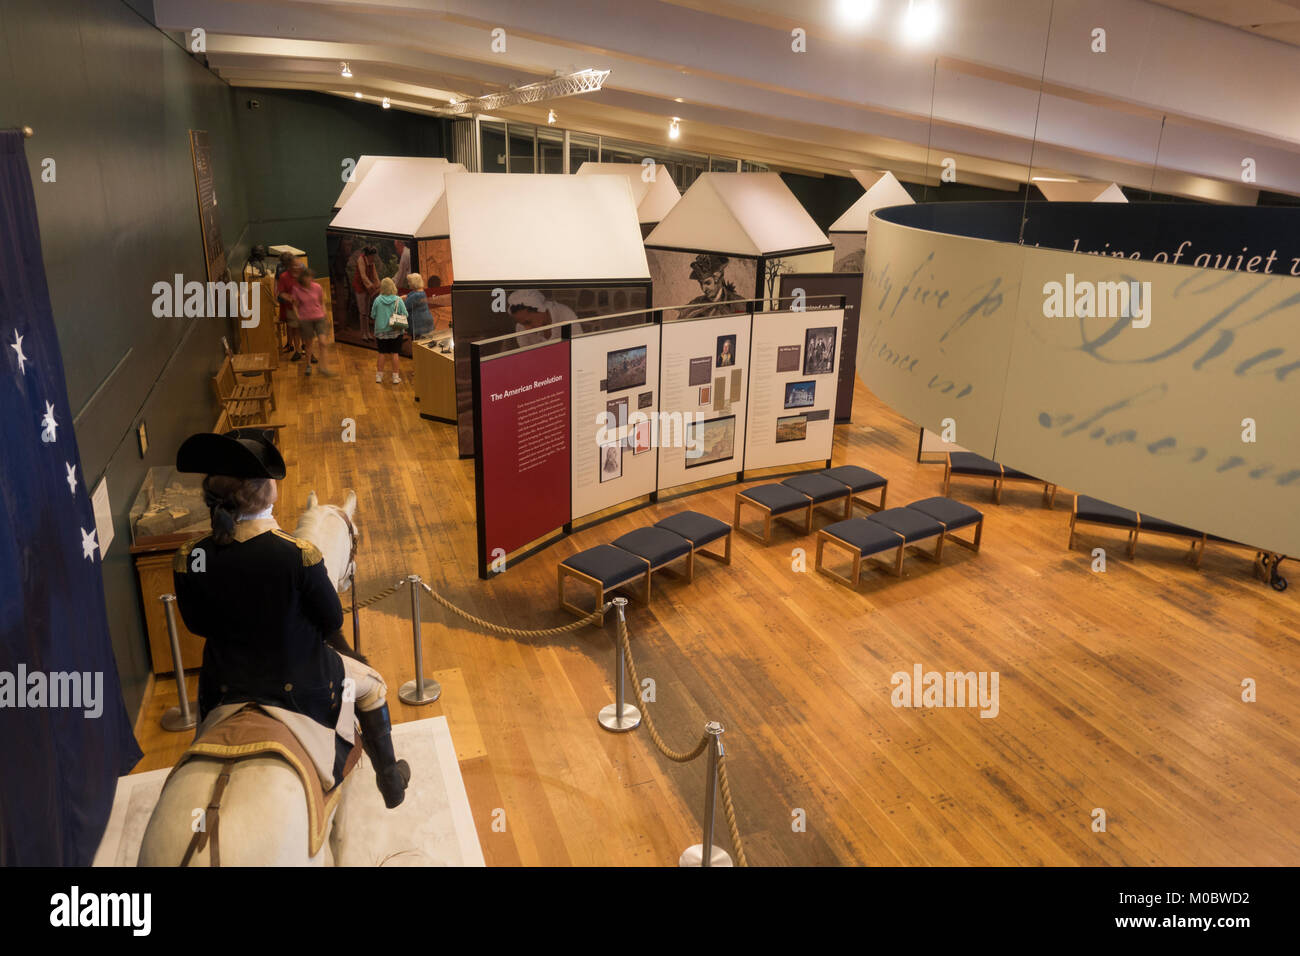 General view inside the Visitor Center at Valley Forge National Historical Park, Pennsylvania, United States. - Stock Image